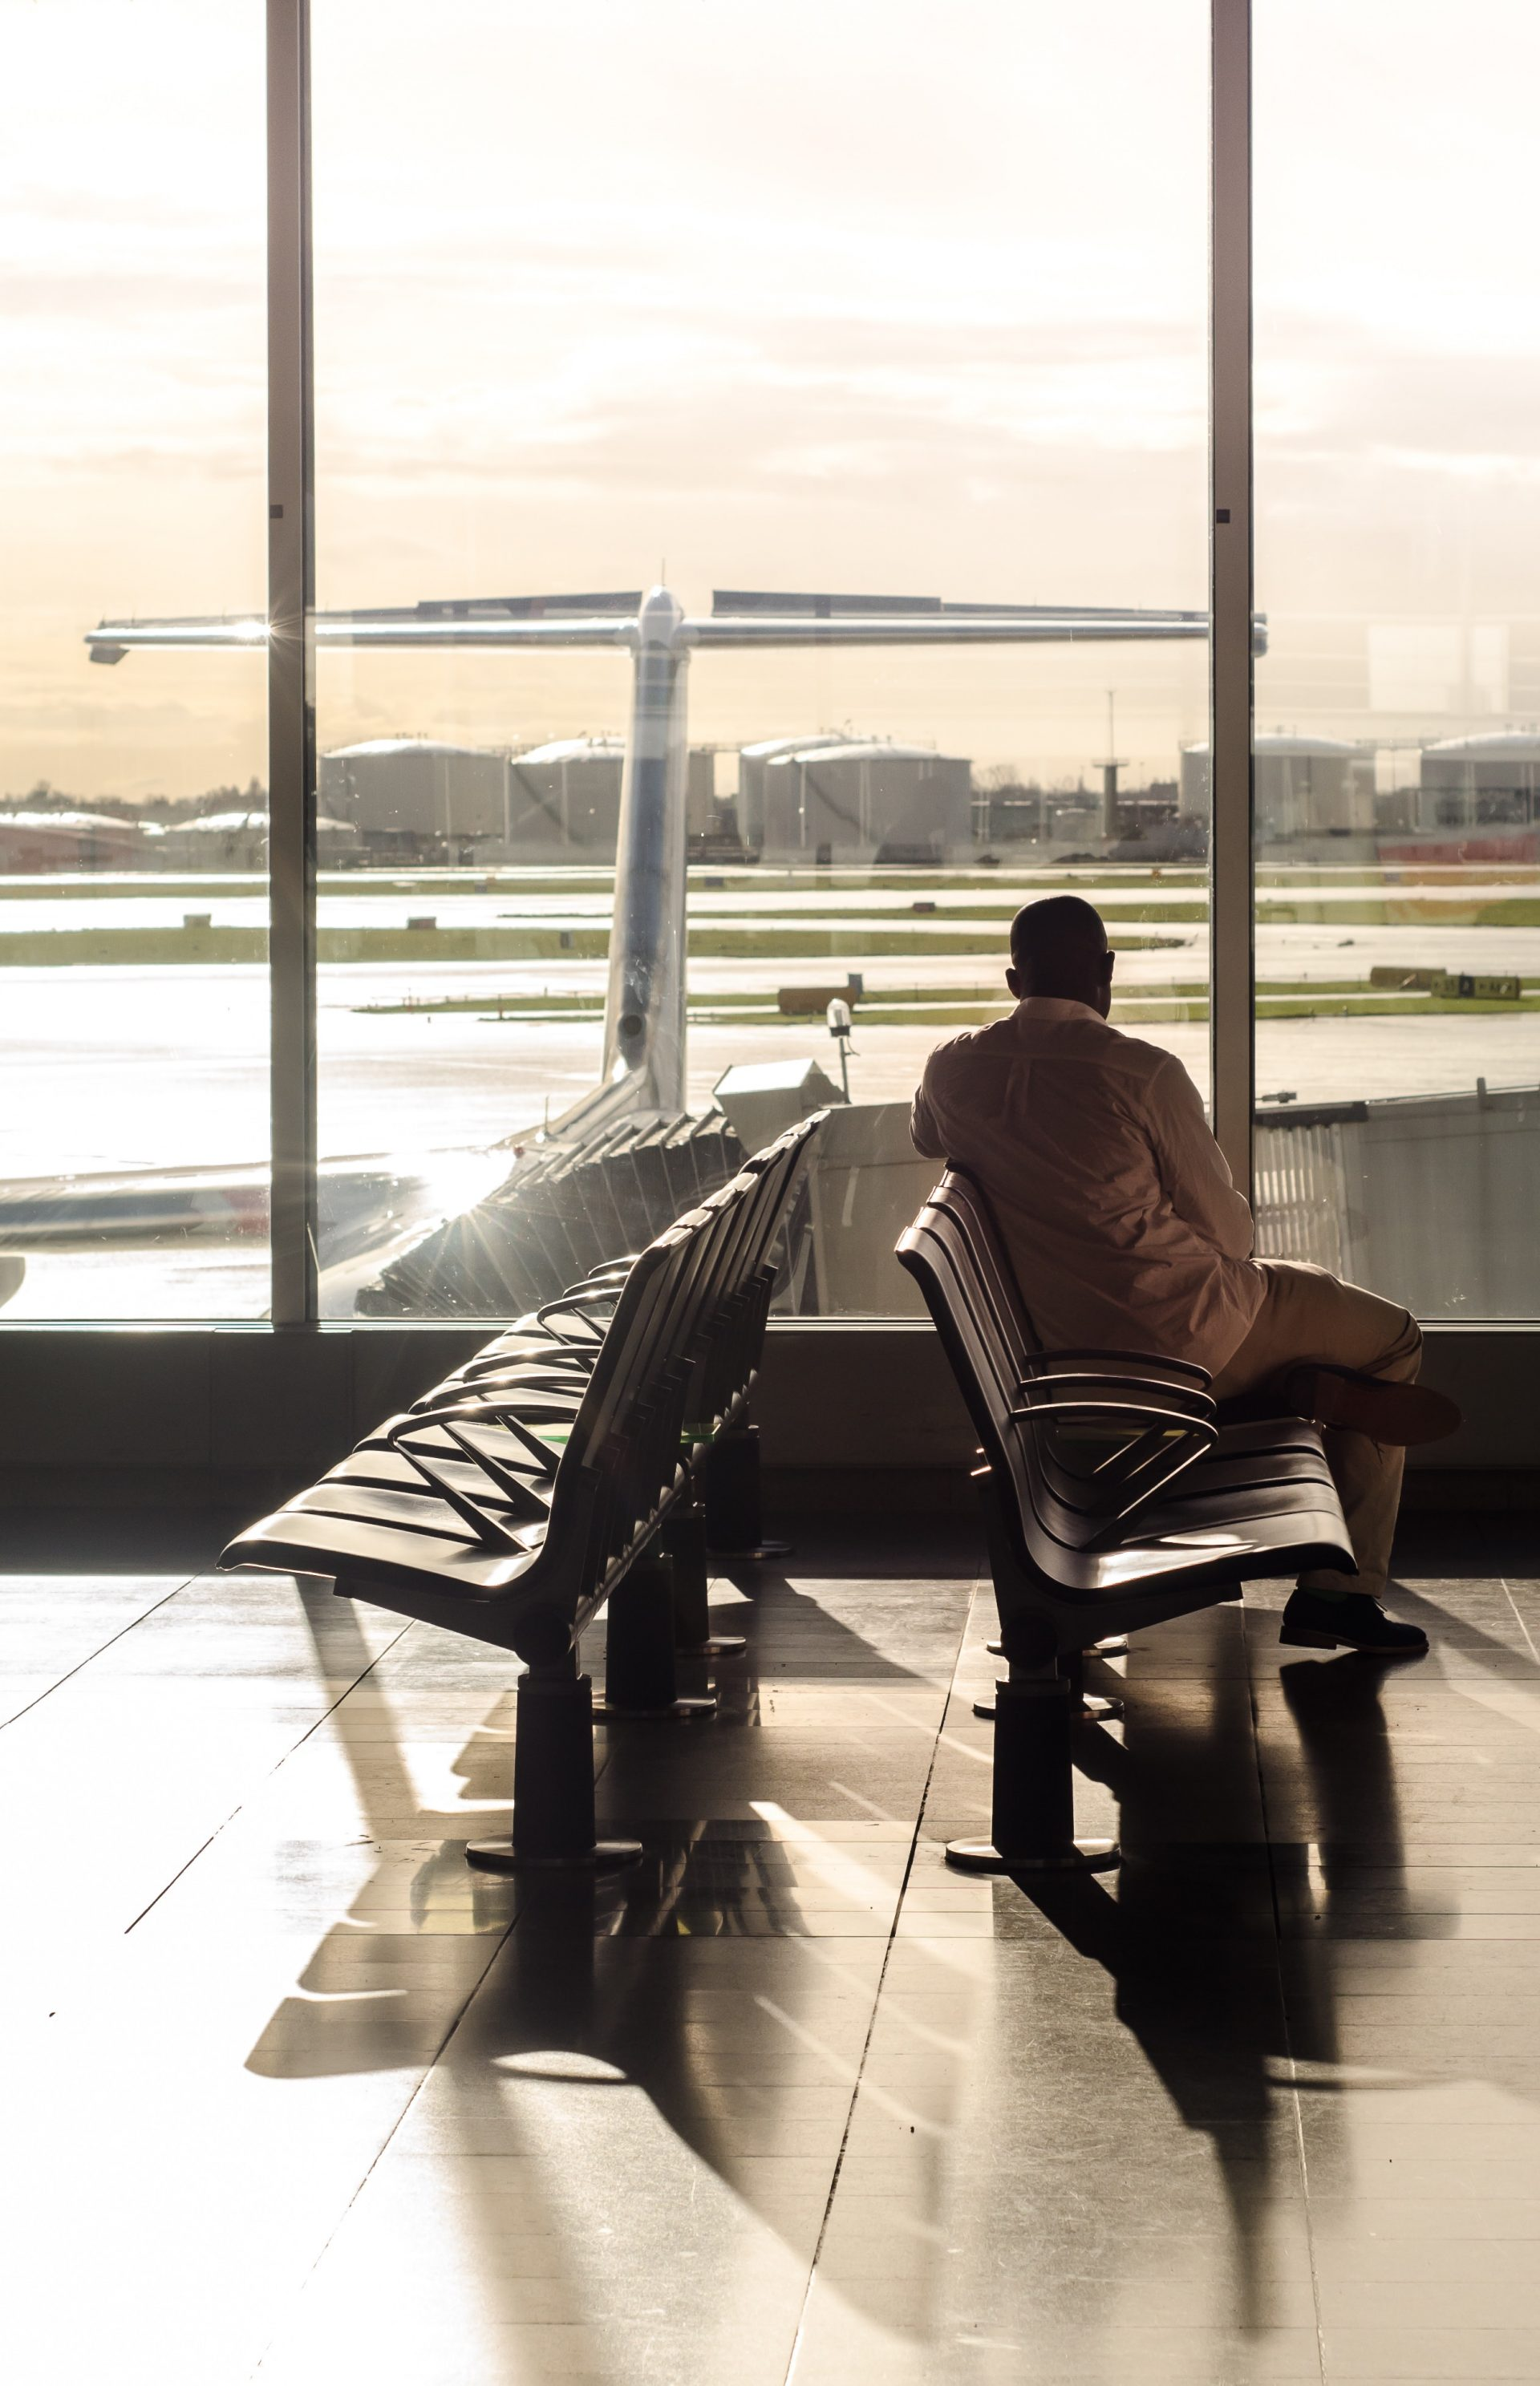 Man looking through window of airport at delayed aircraft by the gate